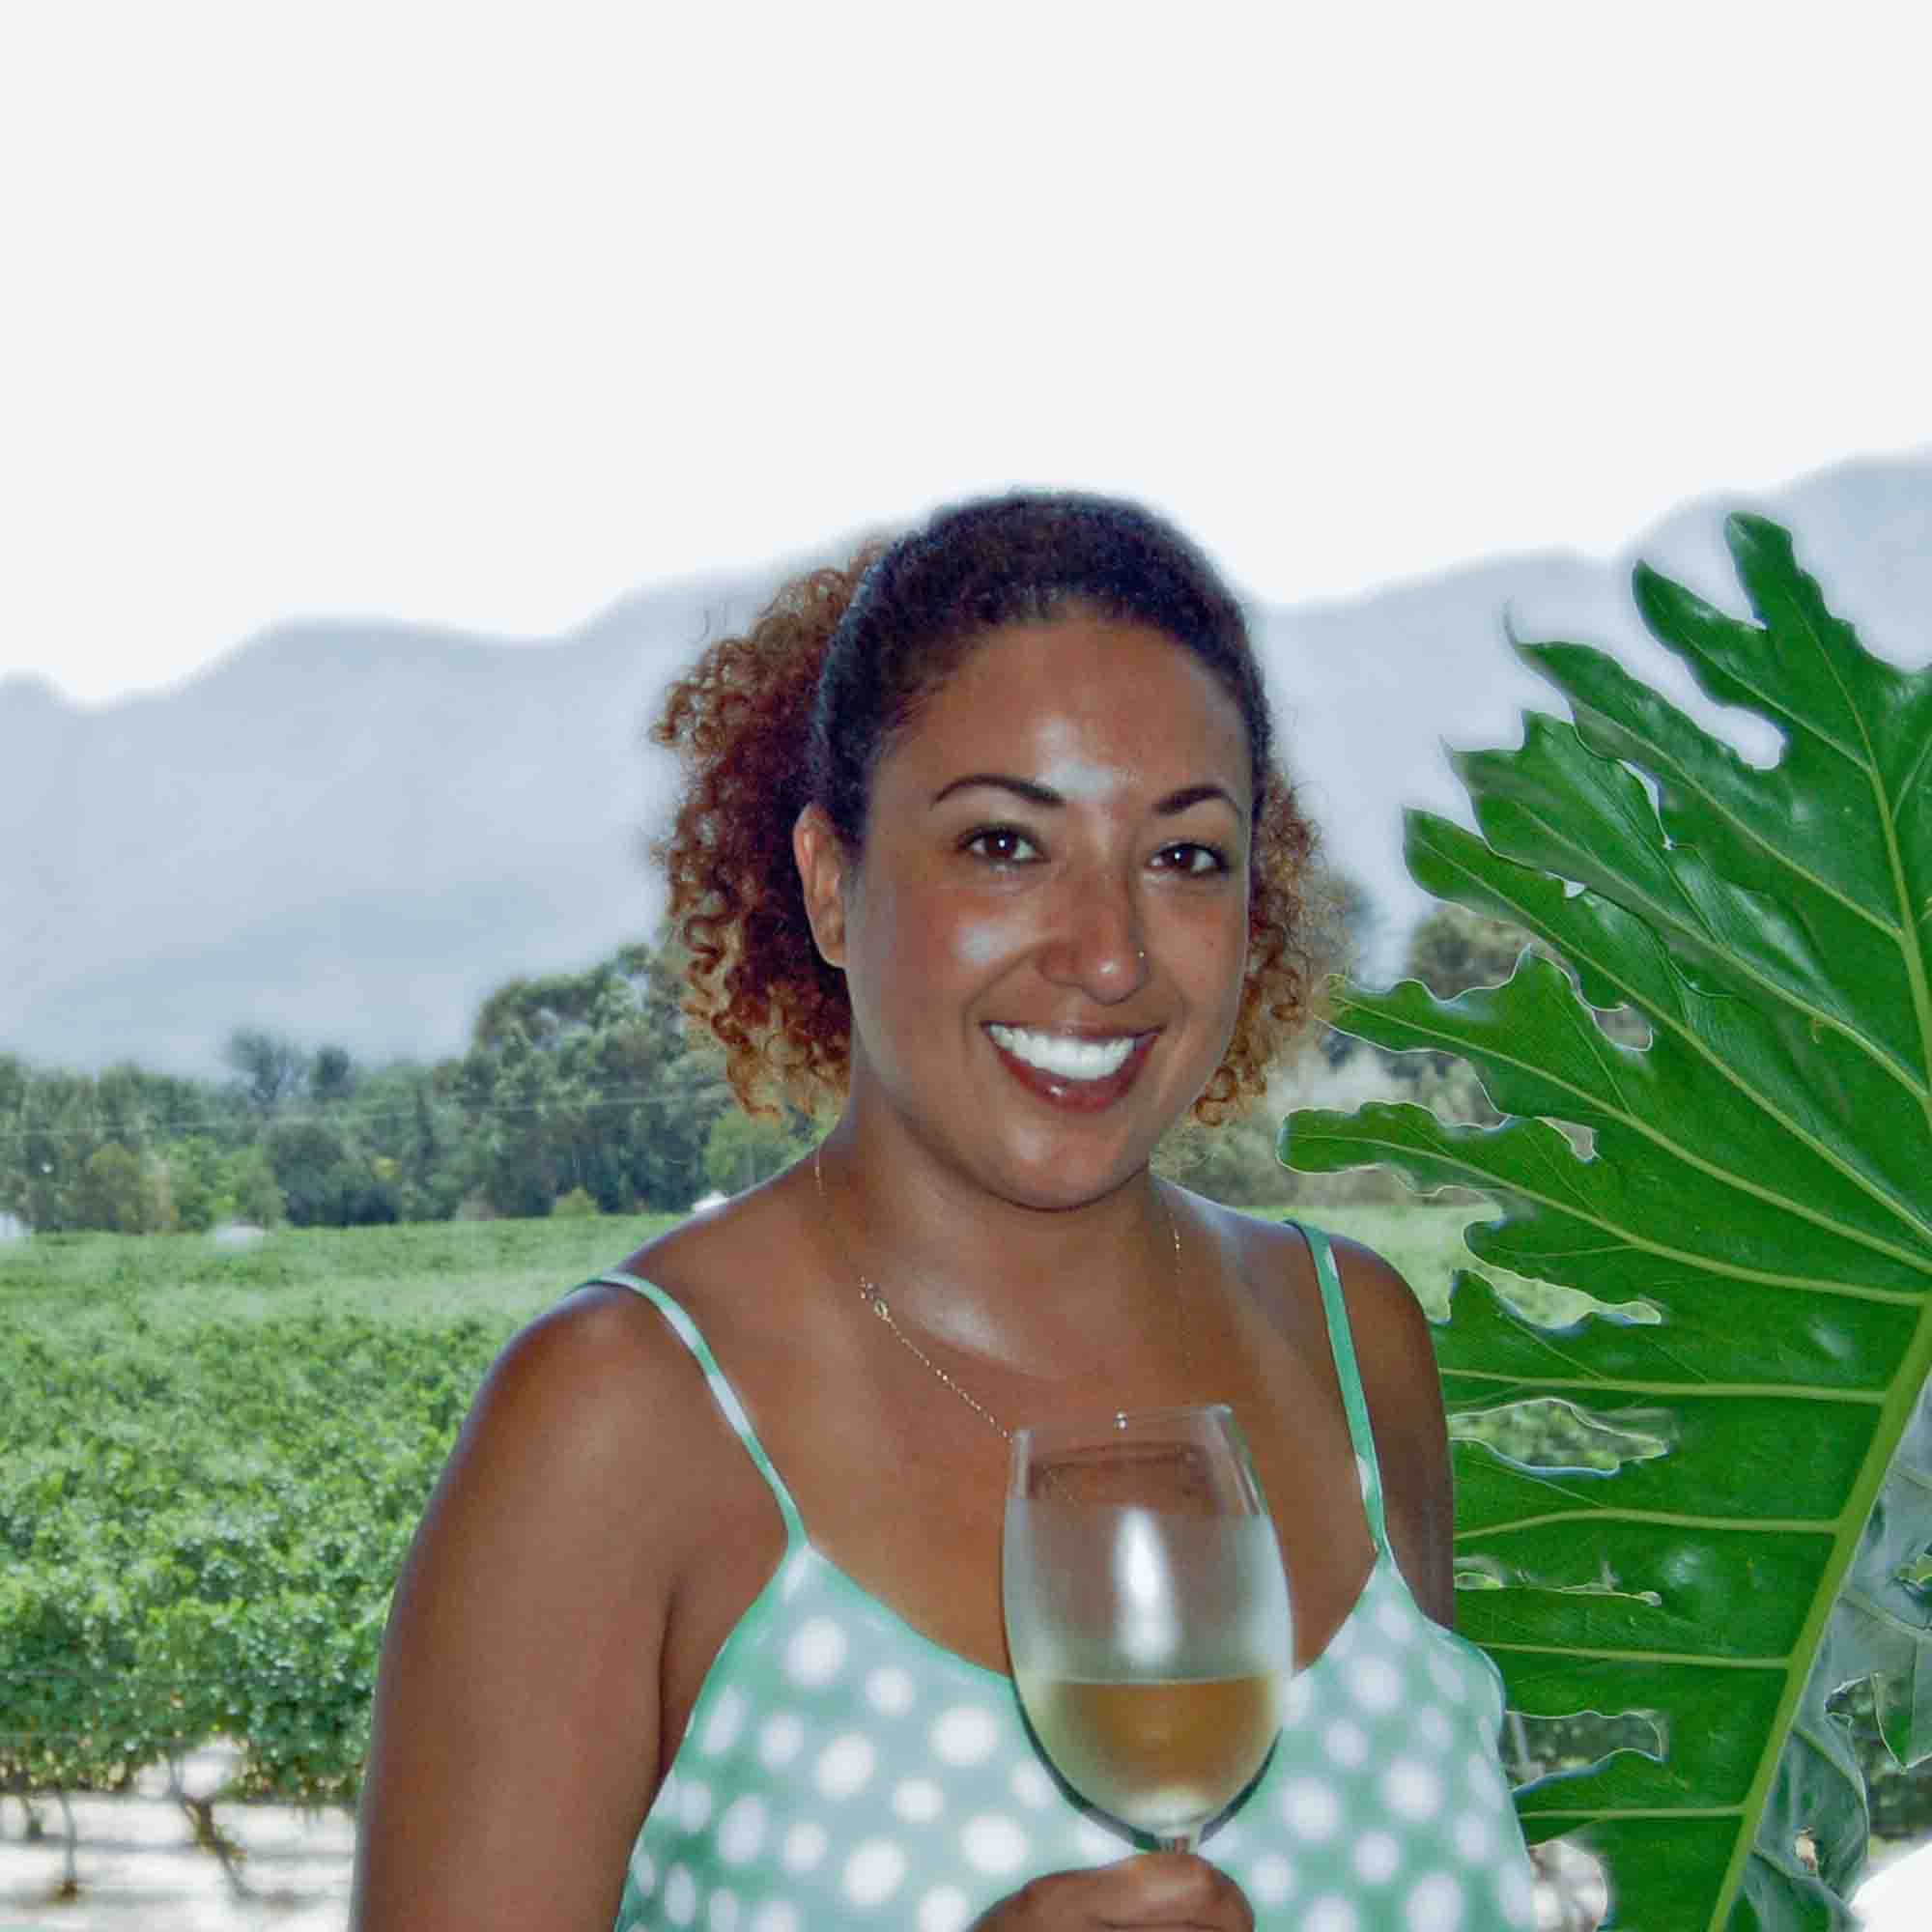 Natalie Davids Founder of Sippers and Spitters